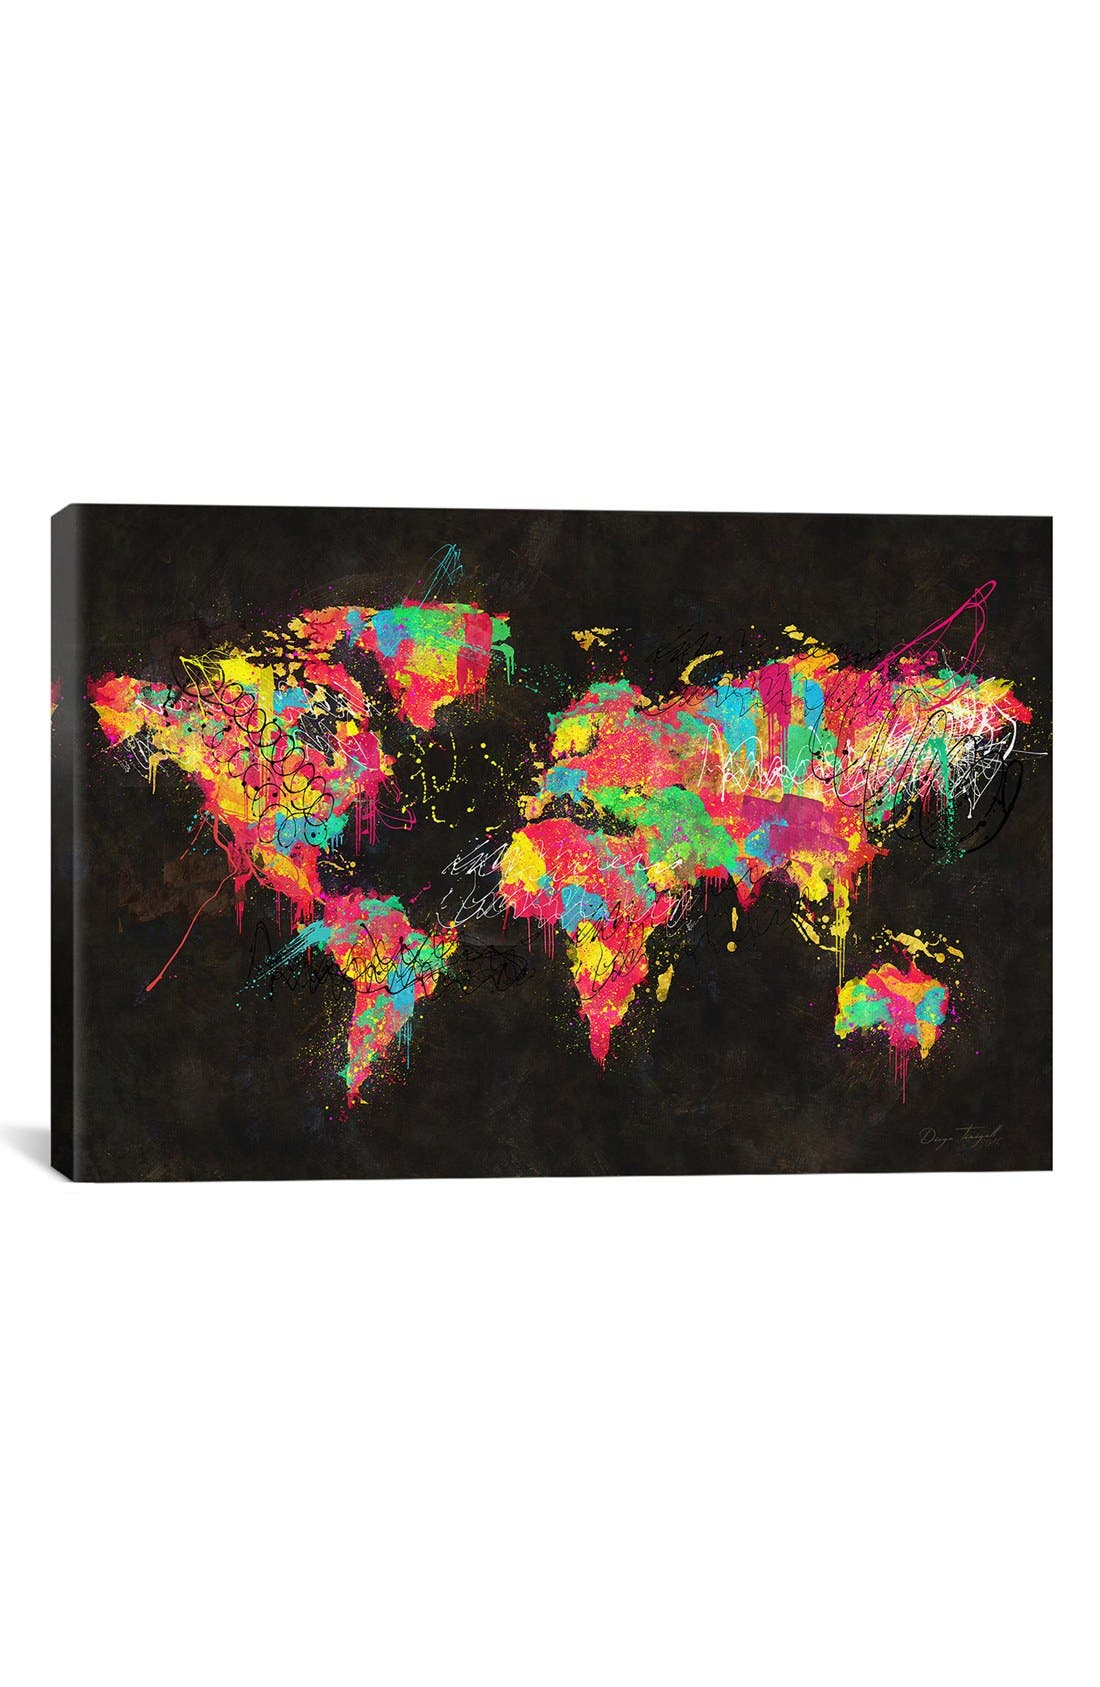 'Continents' Giclée Print Canvas Art,                             Main thumbnail 1, color,